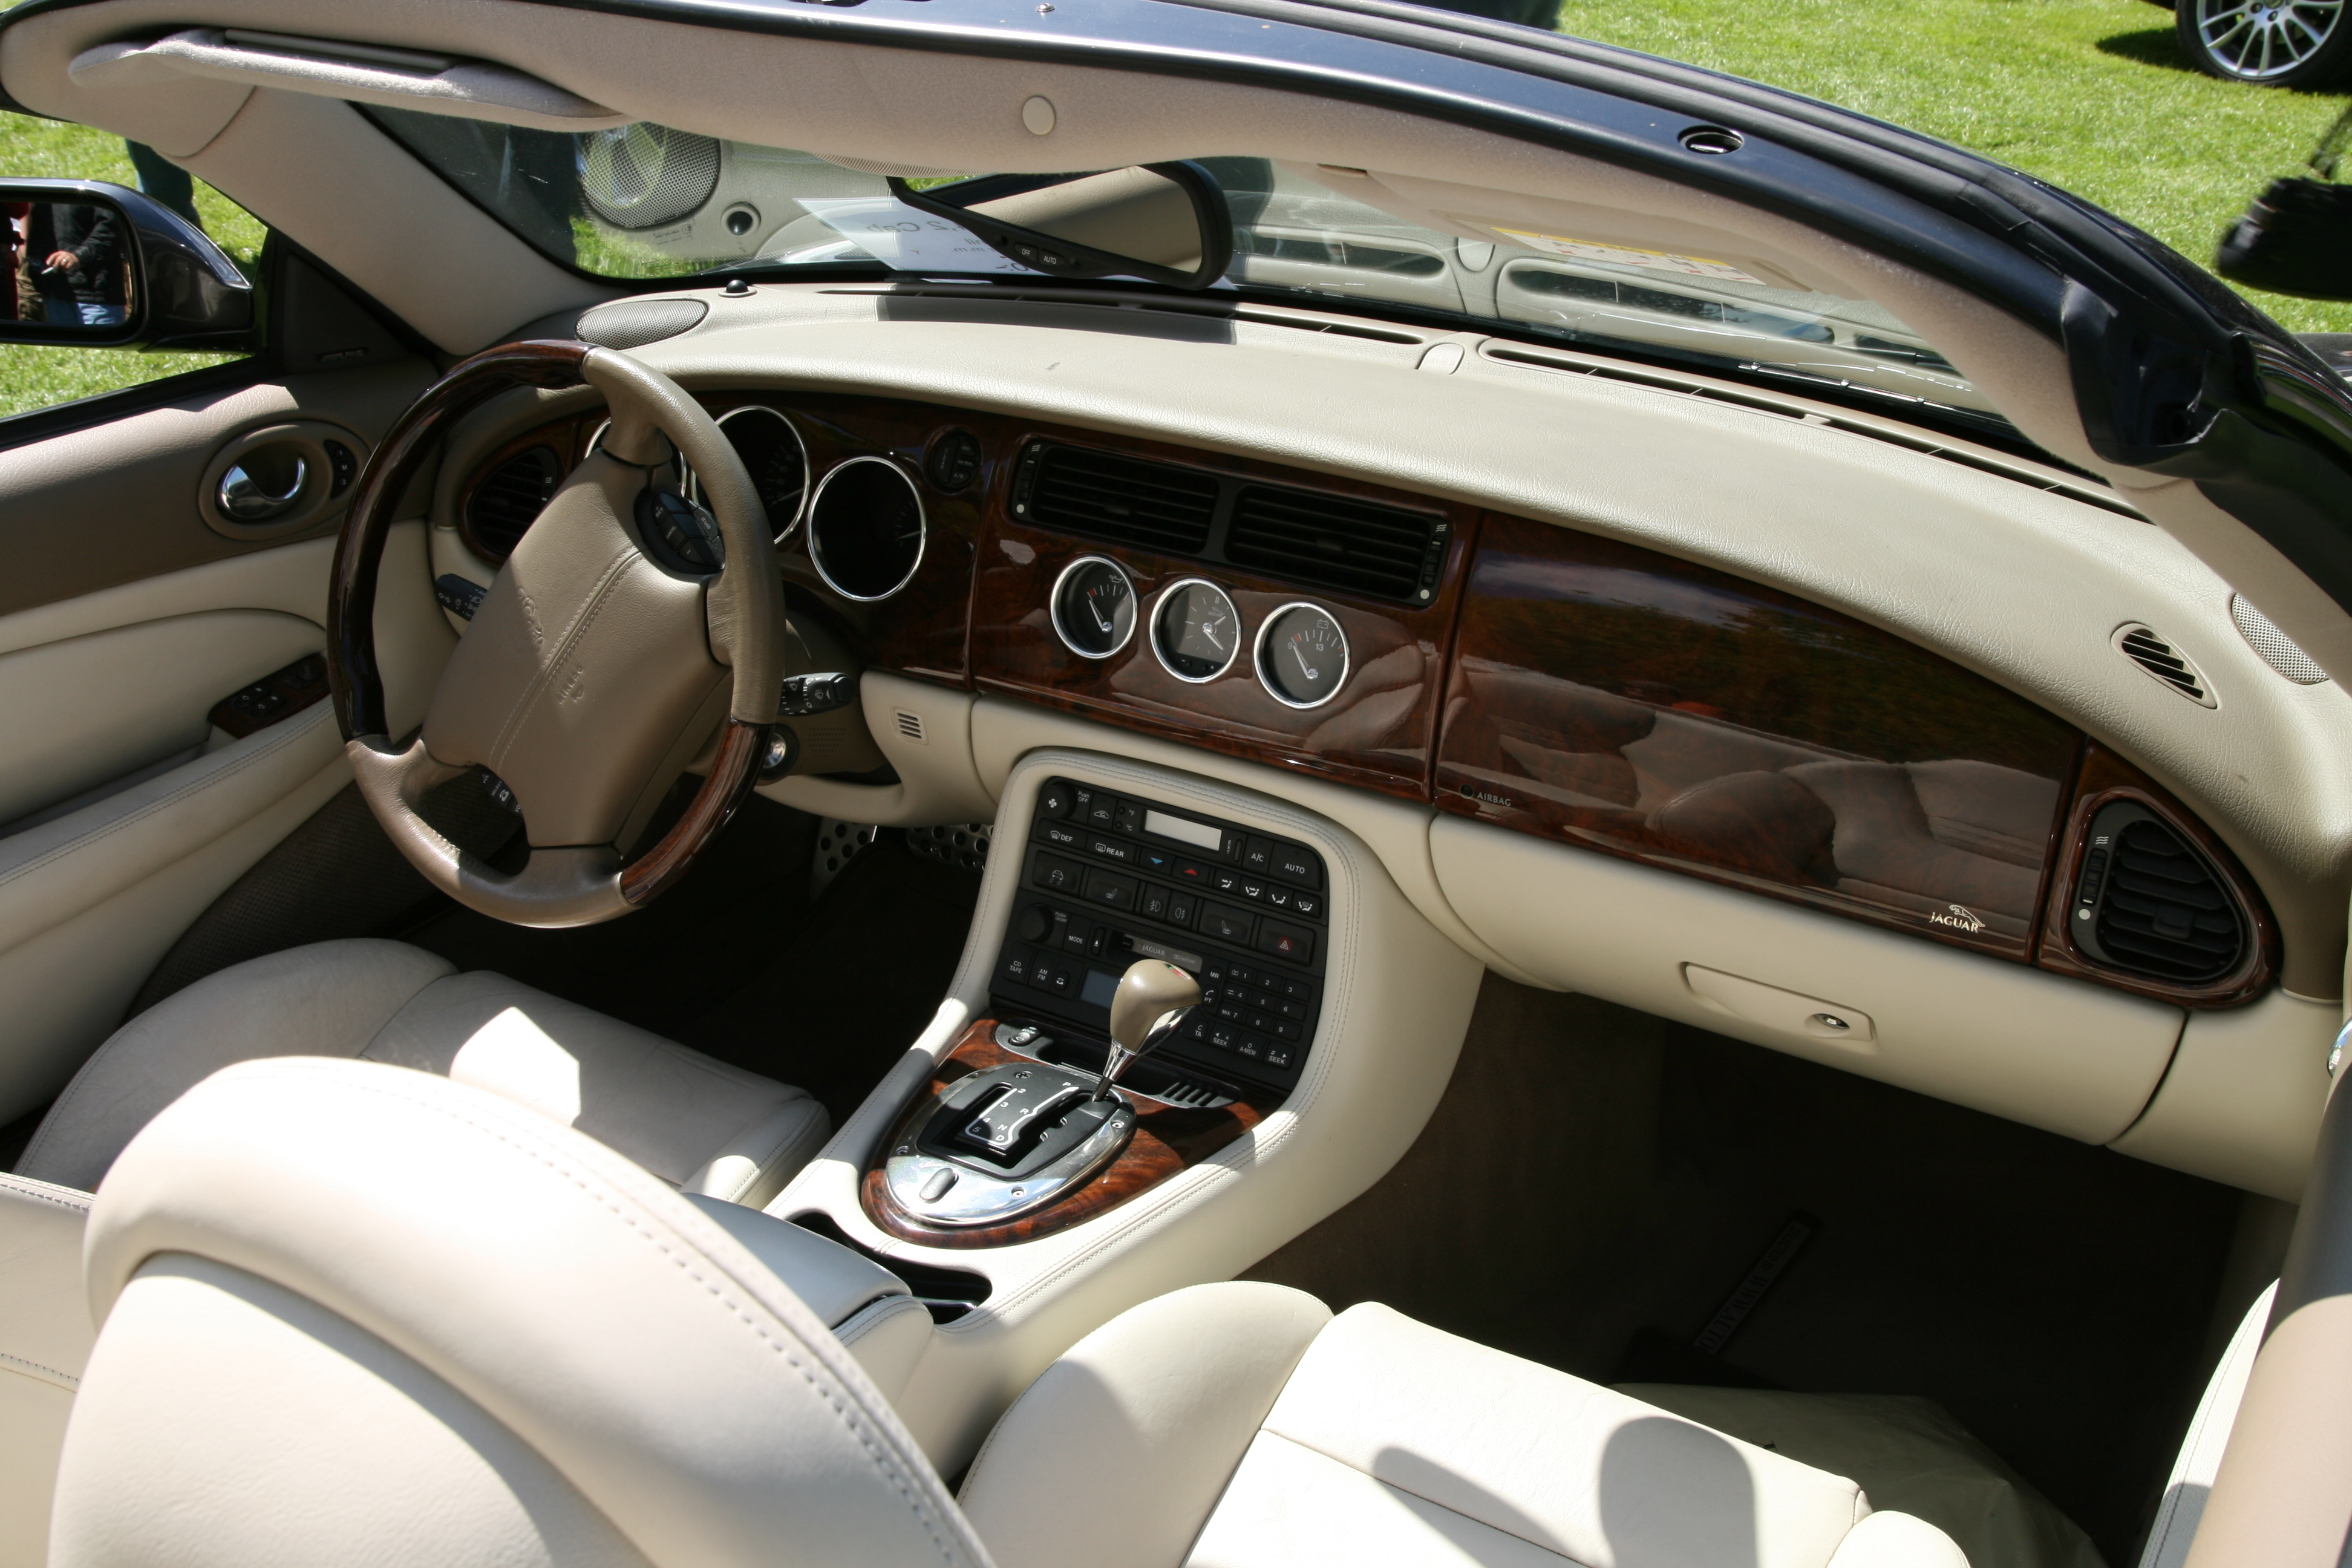 or htm an looking xk classic for someone know jaguar are can we its who older sale determine if have help buy value has a img to always you